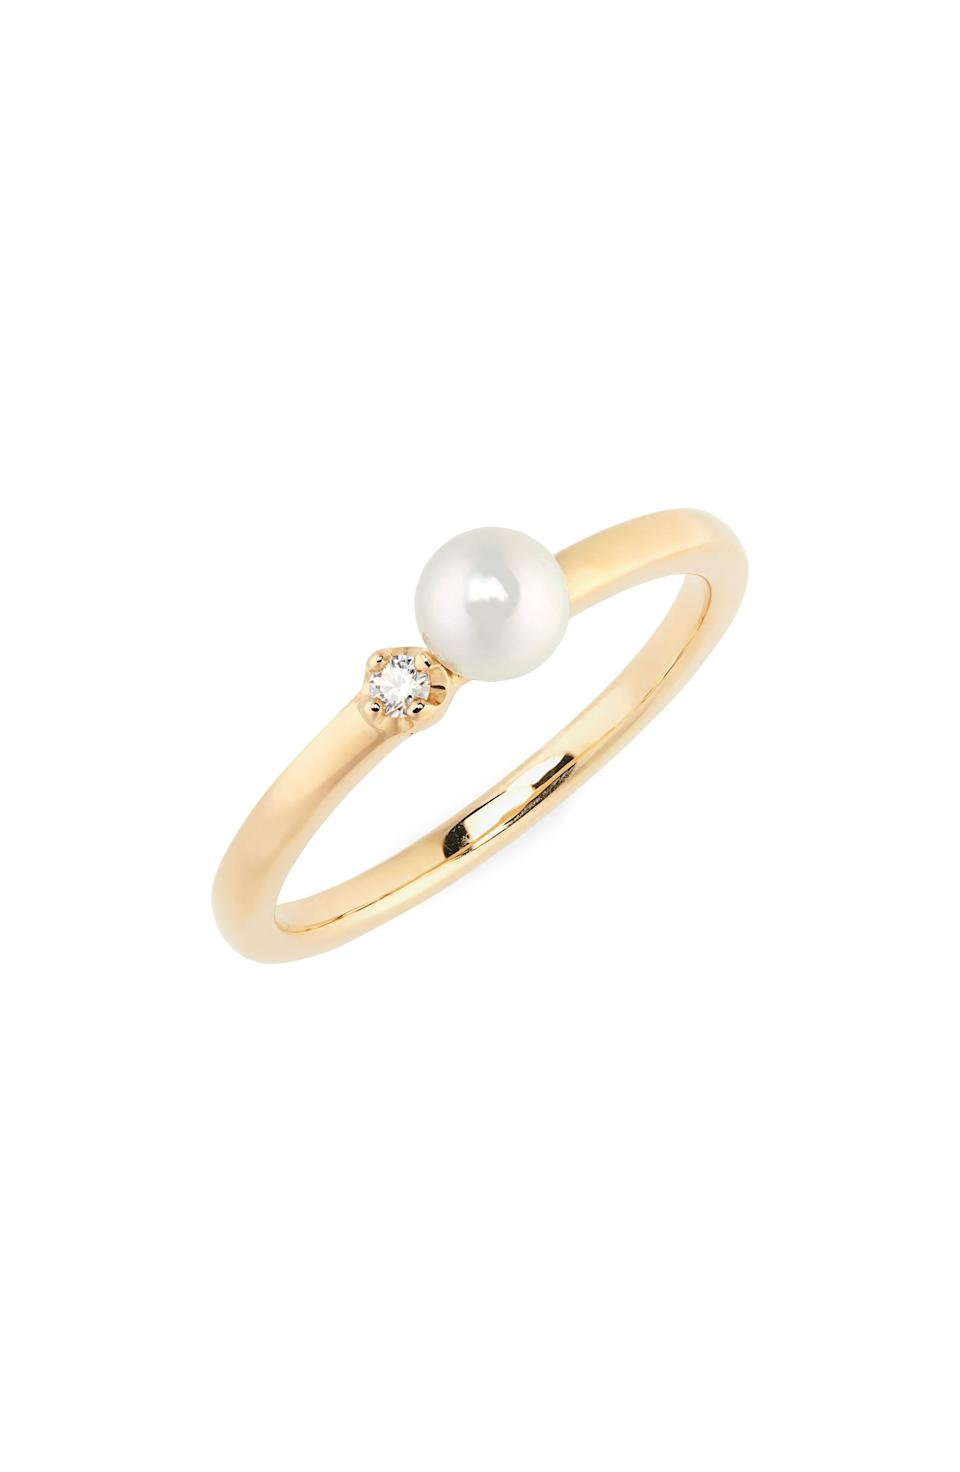 "<br><br><strong>Mikimoto</strong> Cultured Pearl & Diamond Ring, $, available at <a href=""https://go.skimresources.com/?id=30283X879131&url=https%3A%2F%2Fwww.nordstrom.com%2Fs%2Fmikimoto-cultured-pearl-diamond-ring%2F5645993%3Forigin%3Dcategory-personalizedsort%26breadcrumb%3DHome%252FBrands%252FMikimoto%252FWomen%252FJewelry%26color%3Dyellow%2520gold"" rel=""nofollow noopener"" target=""_blank"" data-ylk=""slk:Nordstrom"" class=""link rapid-noclick-resp"">Nordstrom</a>"